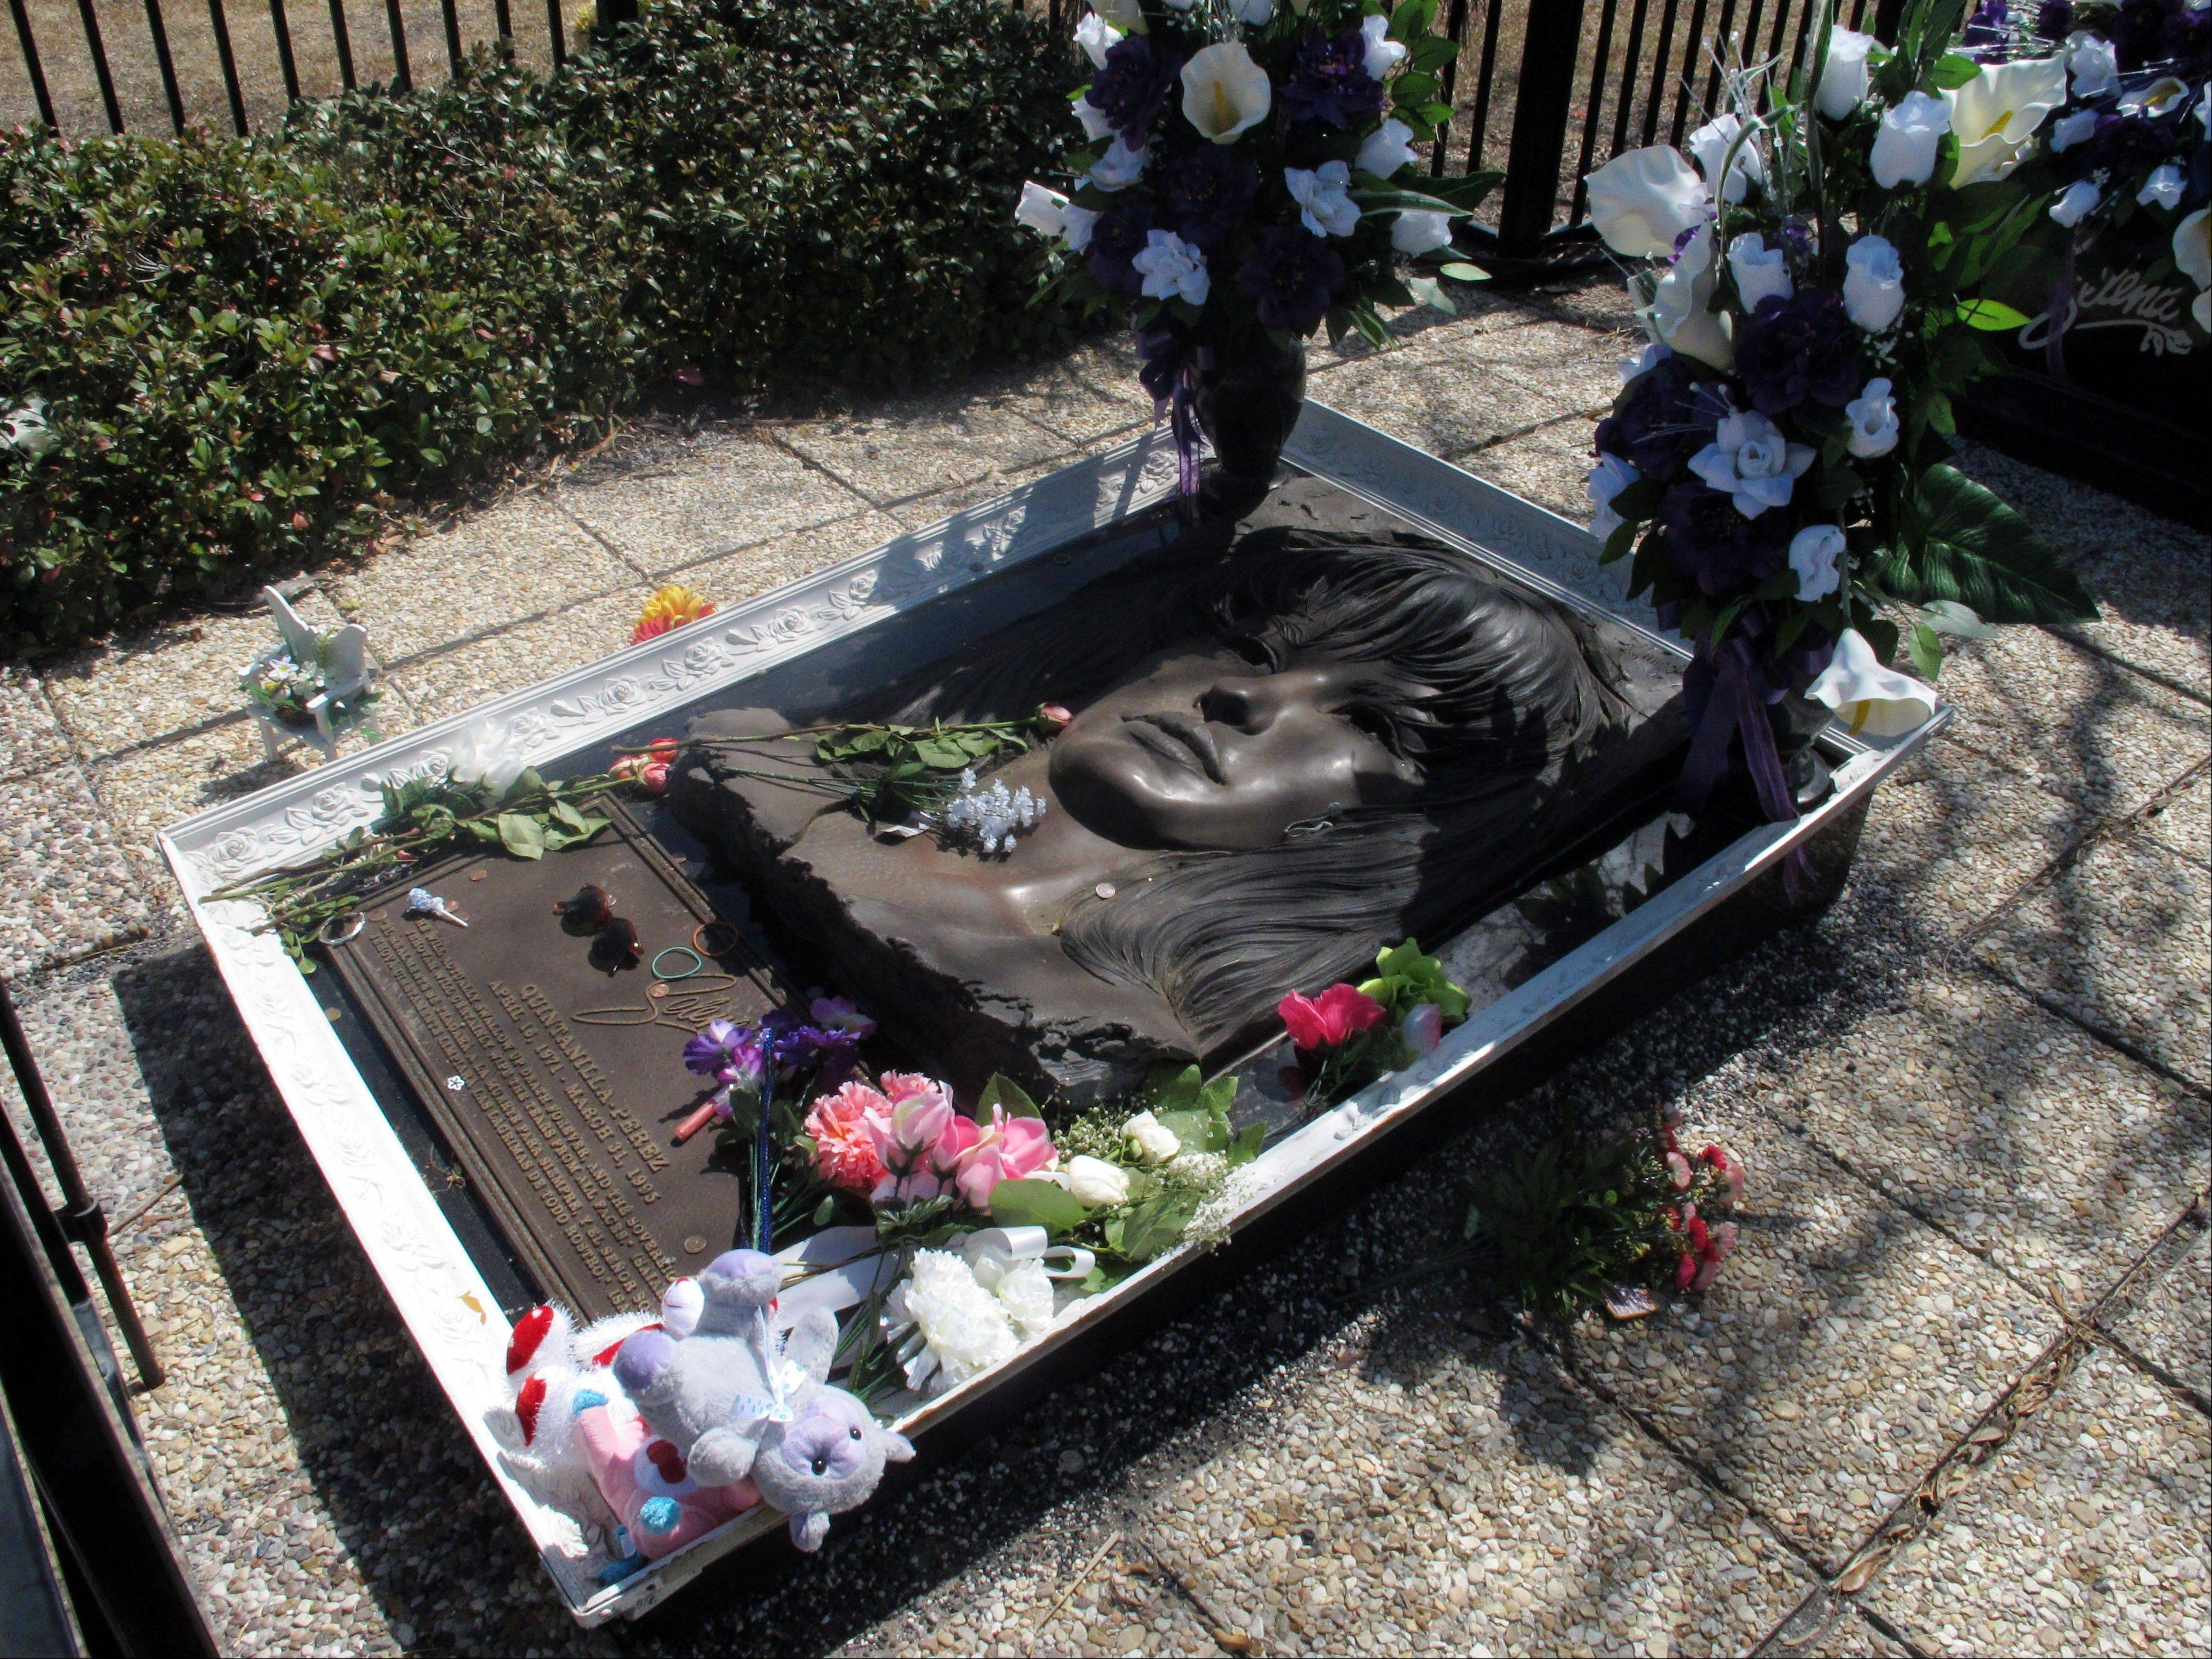 The resting place of the late Tejano singer Selena is shown at the Seaside Memorial Park in Corpus Christi, Texas.